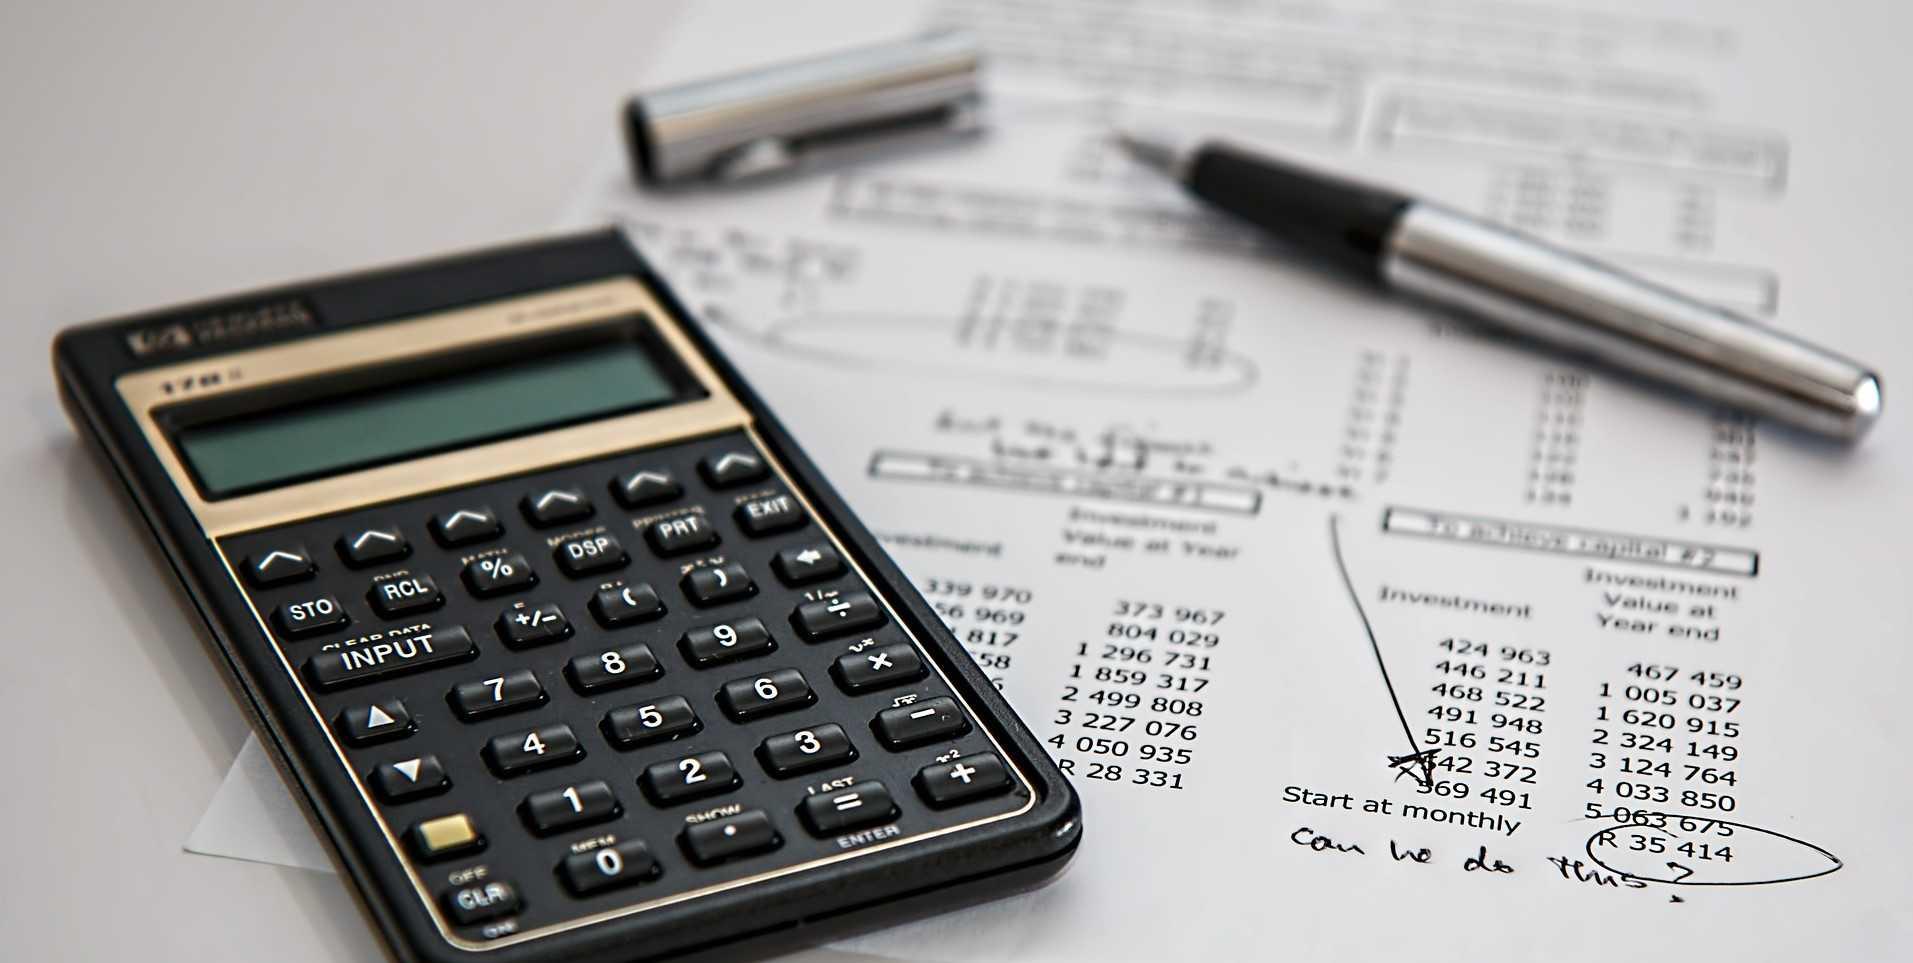 Gather all financial statements